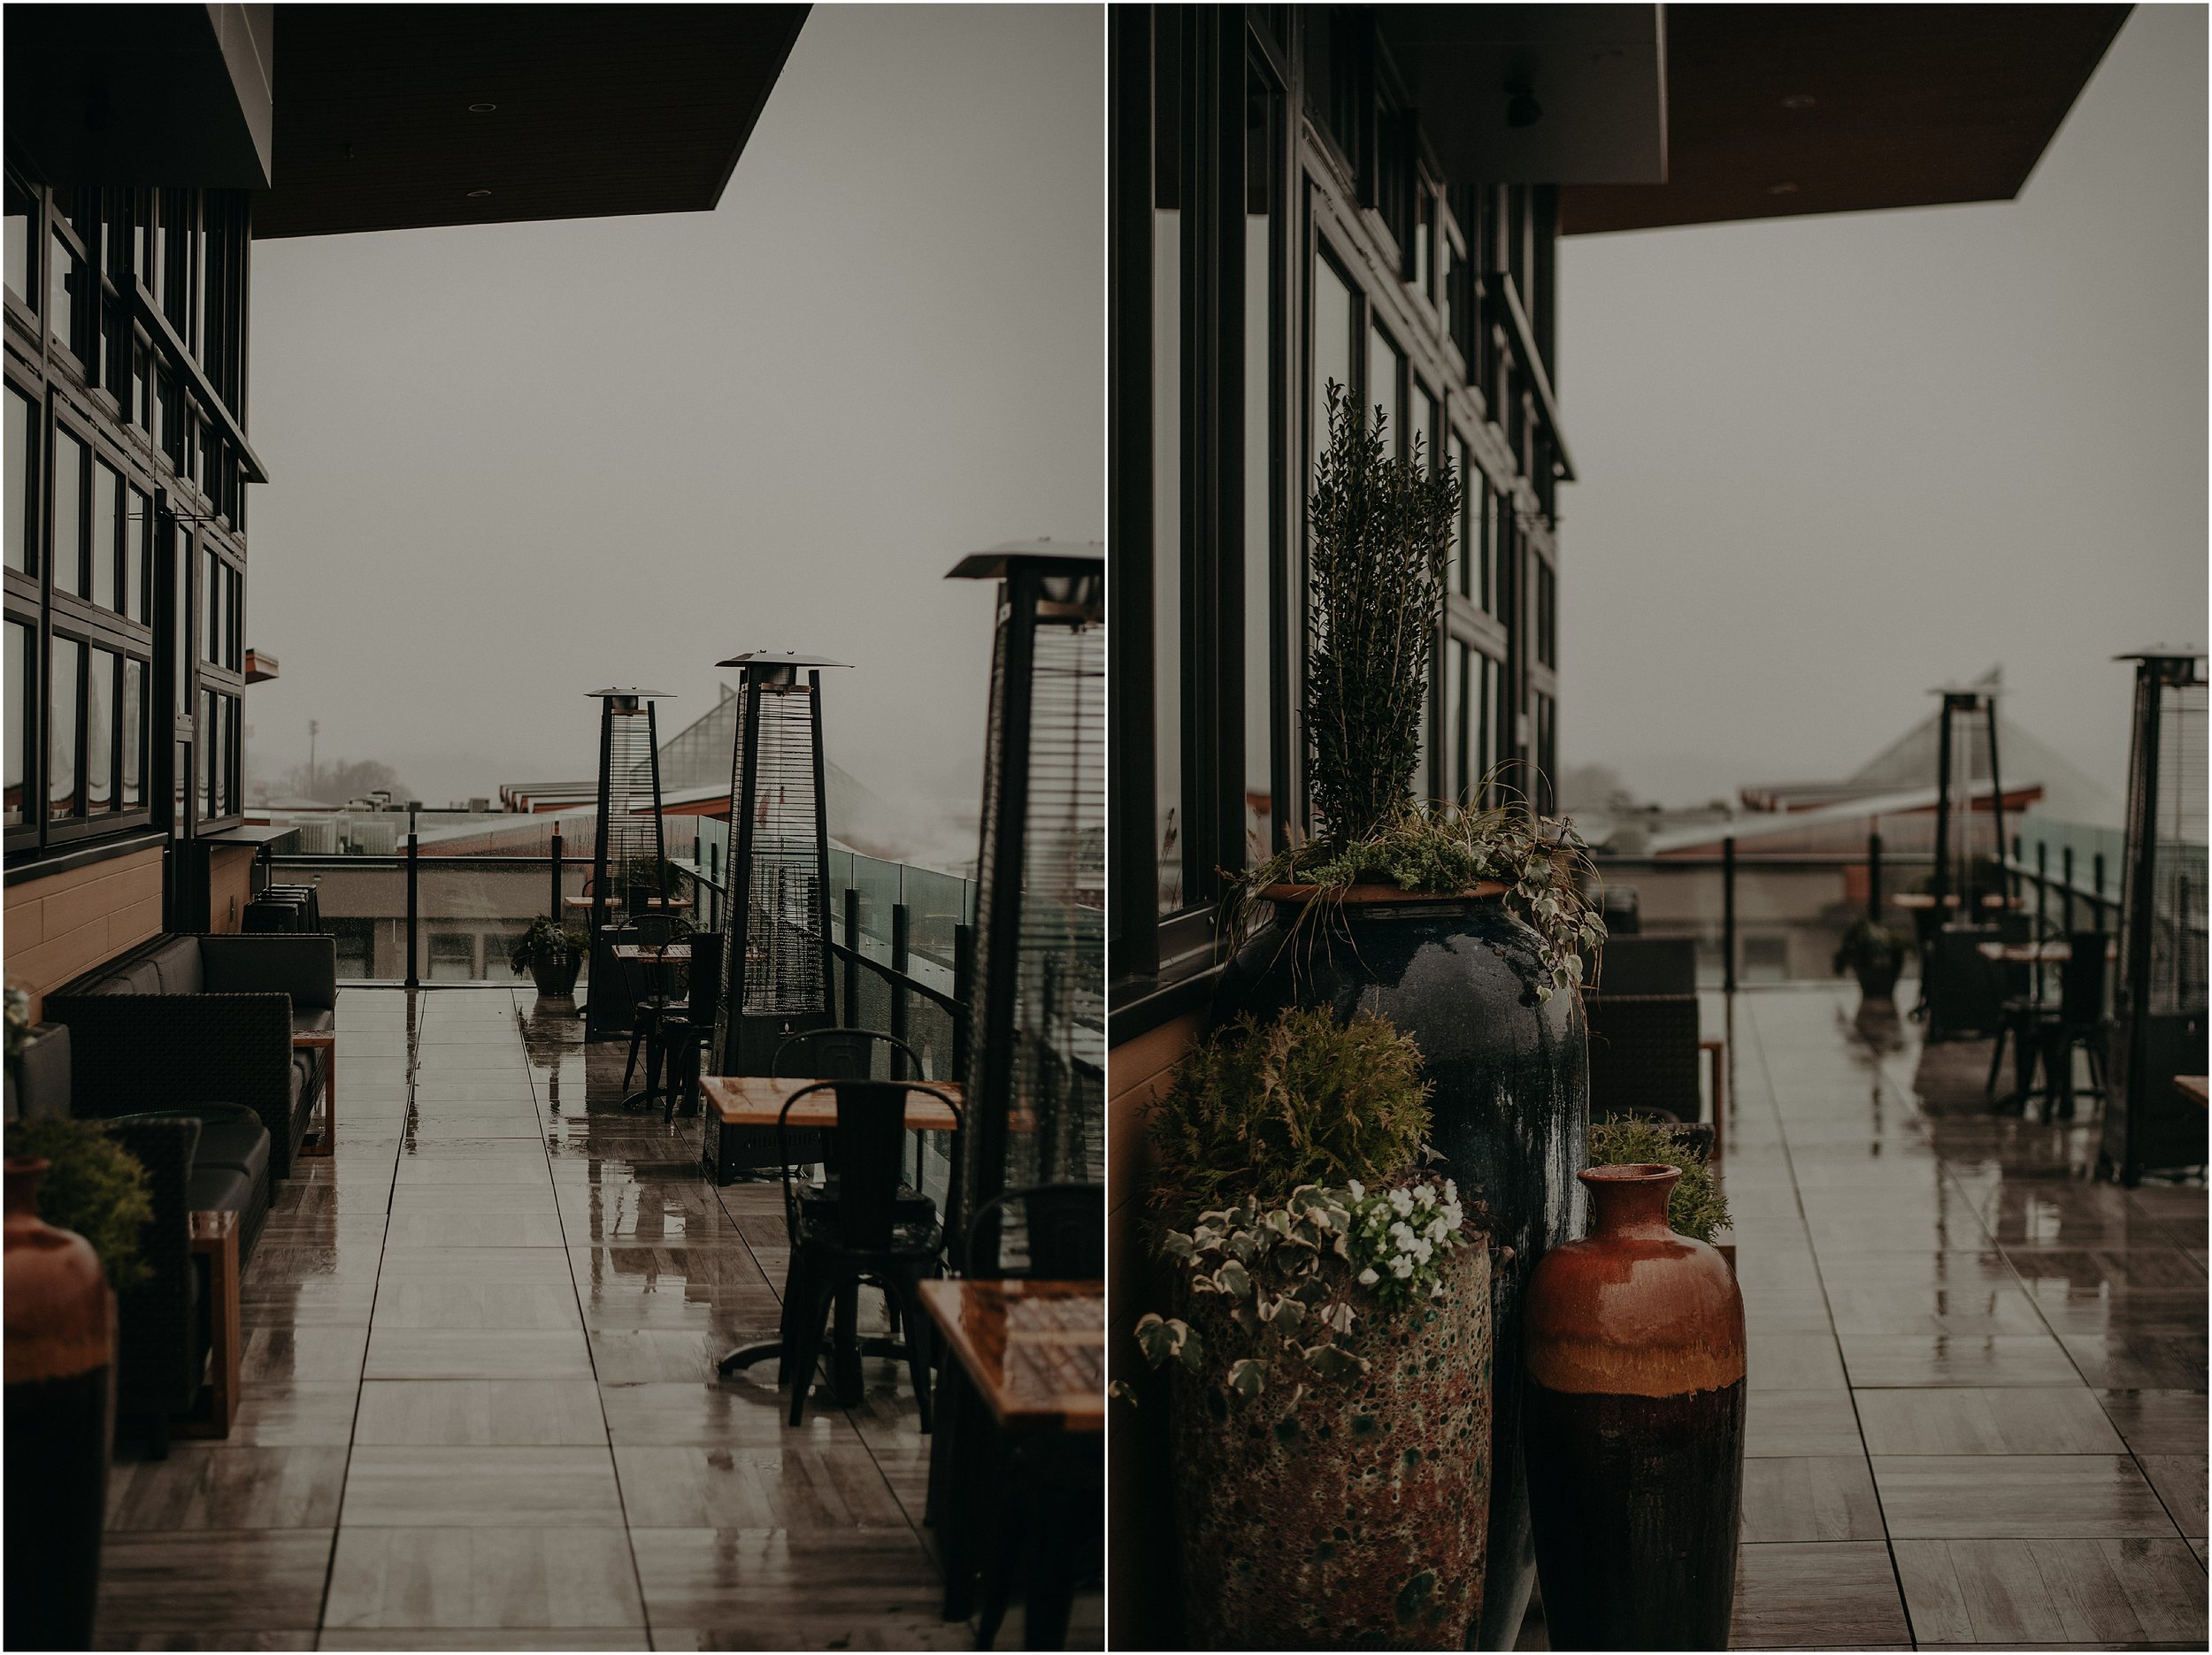 The rain-soaked patio of the Whiskey Thief Lounge